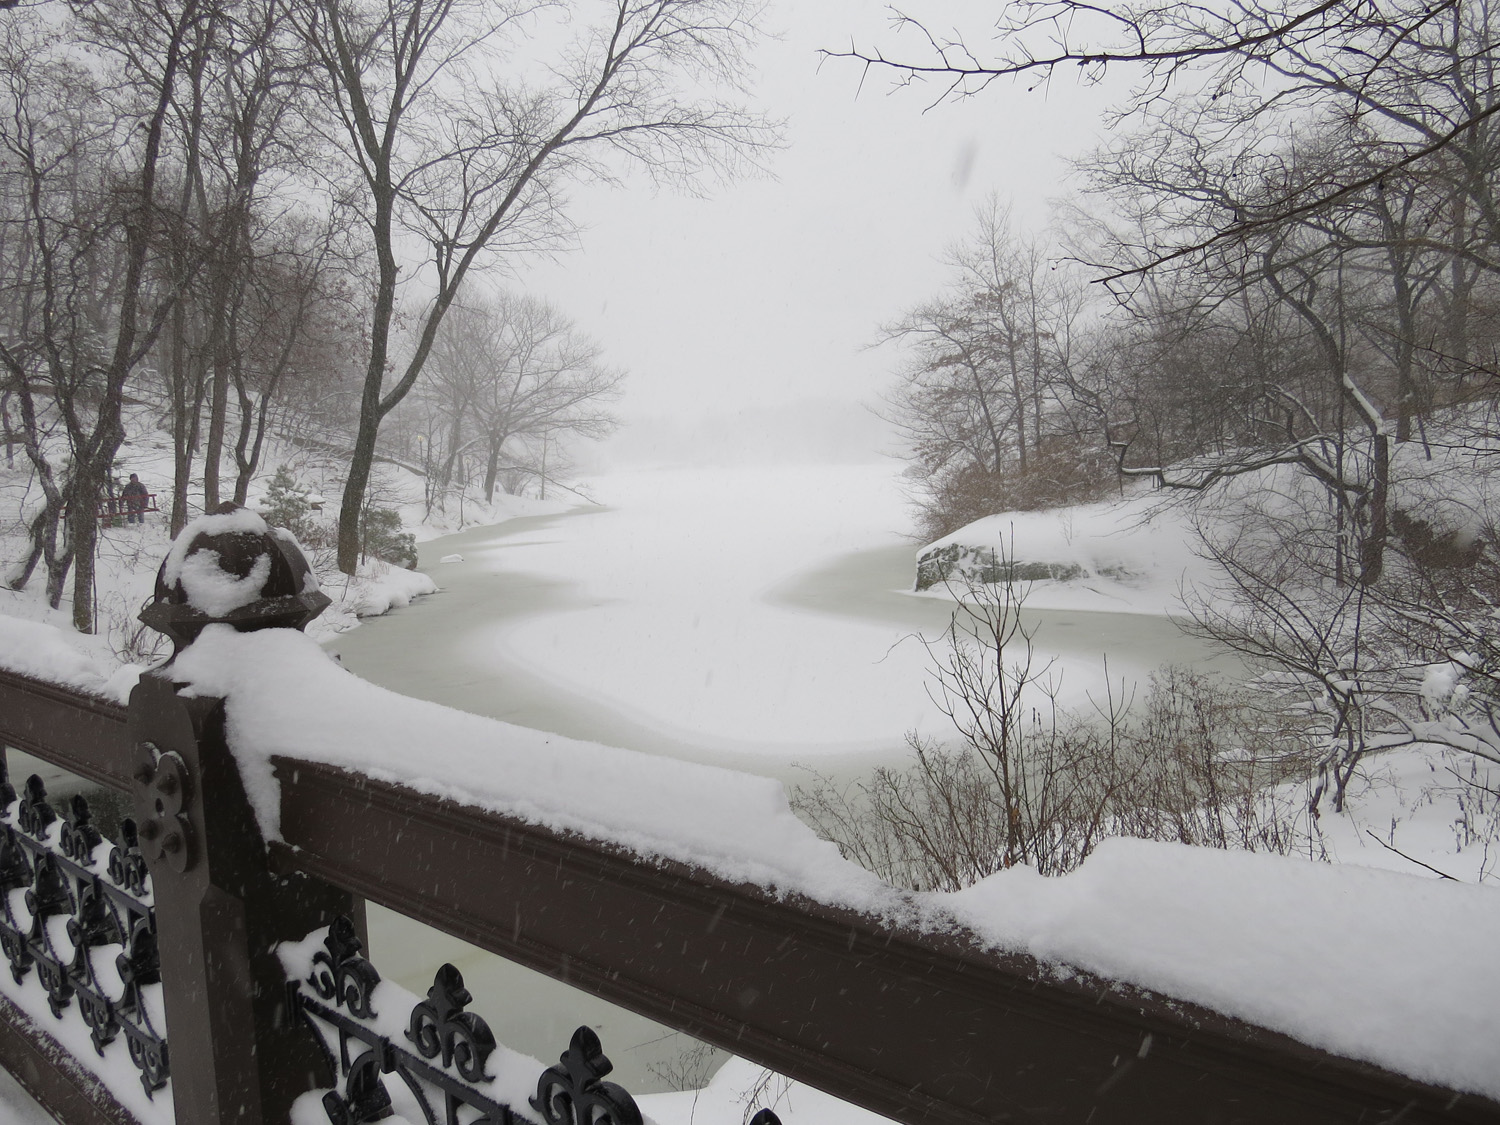 Central Park, Oak Bridge, Jan. 23, 2016